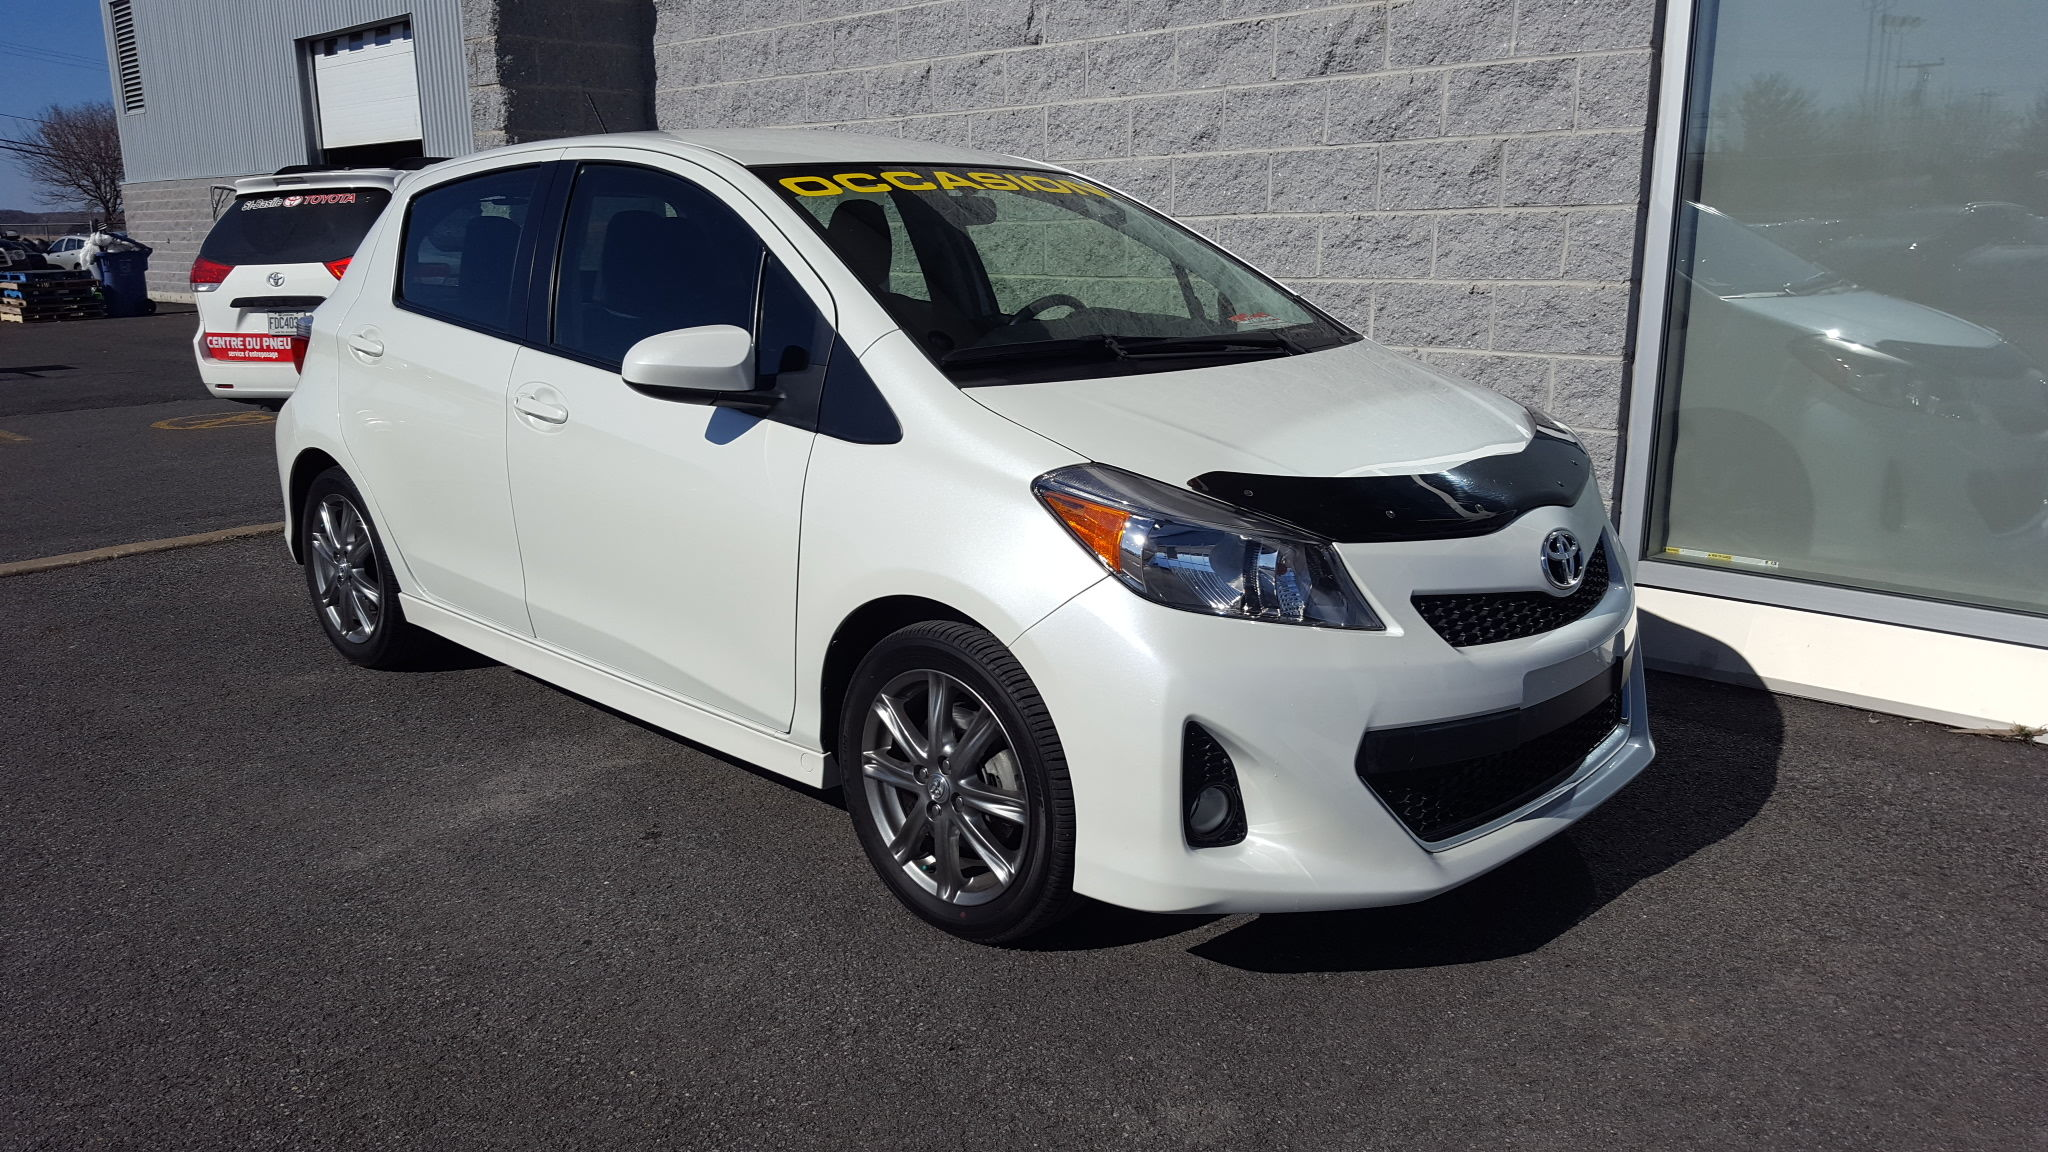 2013 toyota yaris se mags fogs clim cruise d 39 occasion saint basile le grand inventaire d. Black Bedroom Furniture Sets. Home Design Ideas